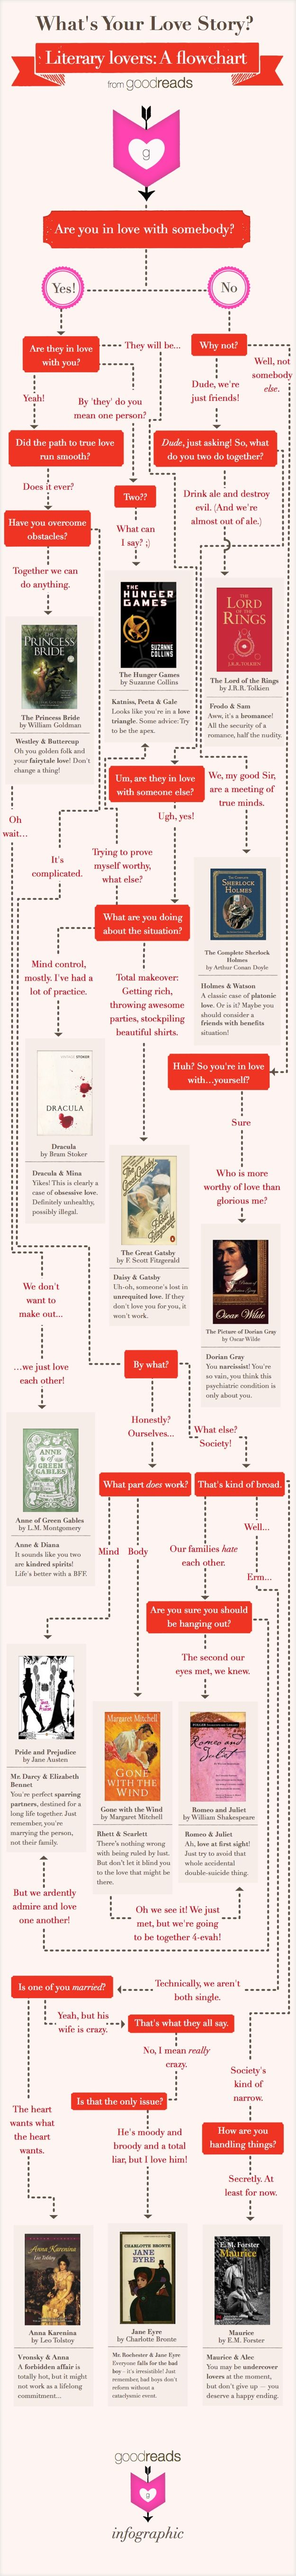 Literary lovers - what's your love story?